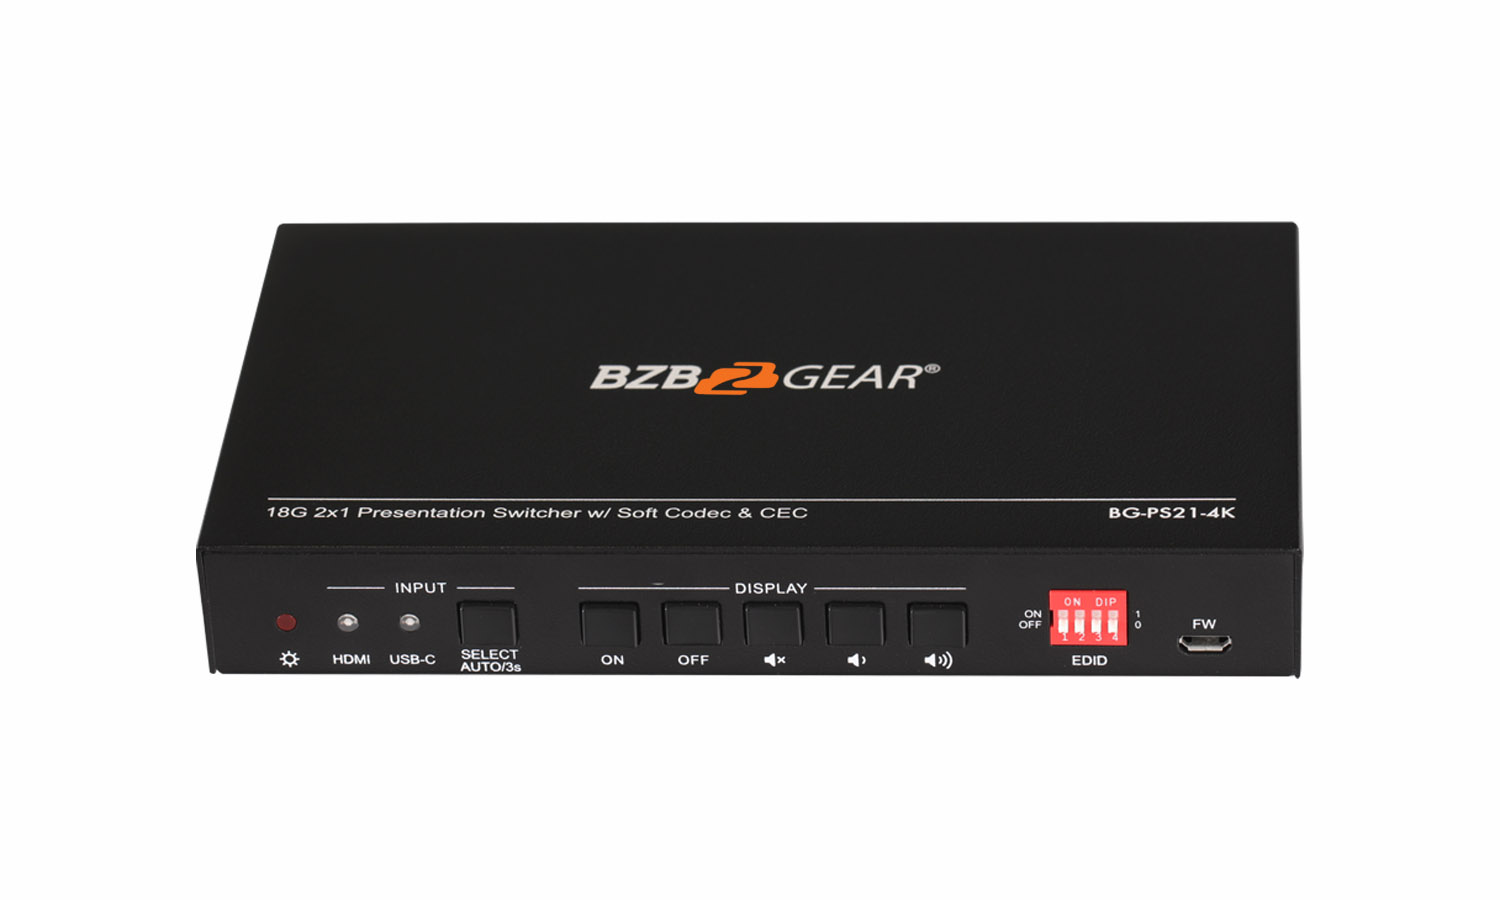 2x1 18G 60Hz 4x4x4 Presentation/2-Port KVM Switcher with HDMI and USB-C Inputs